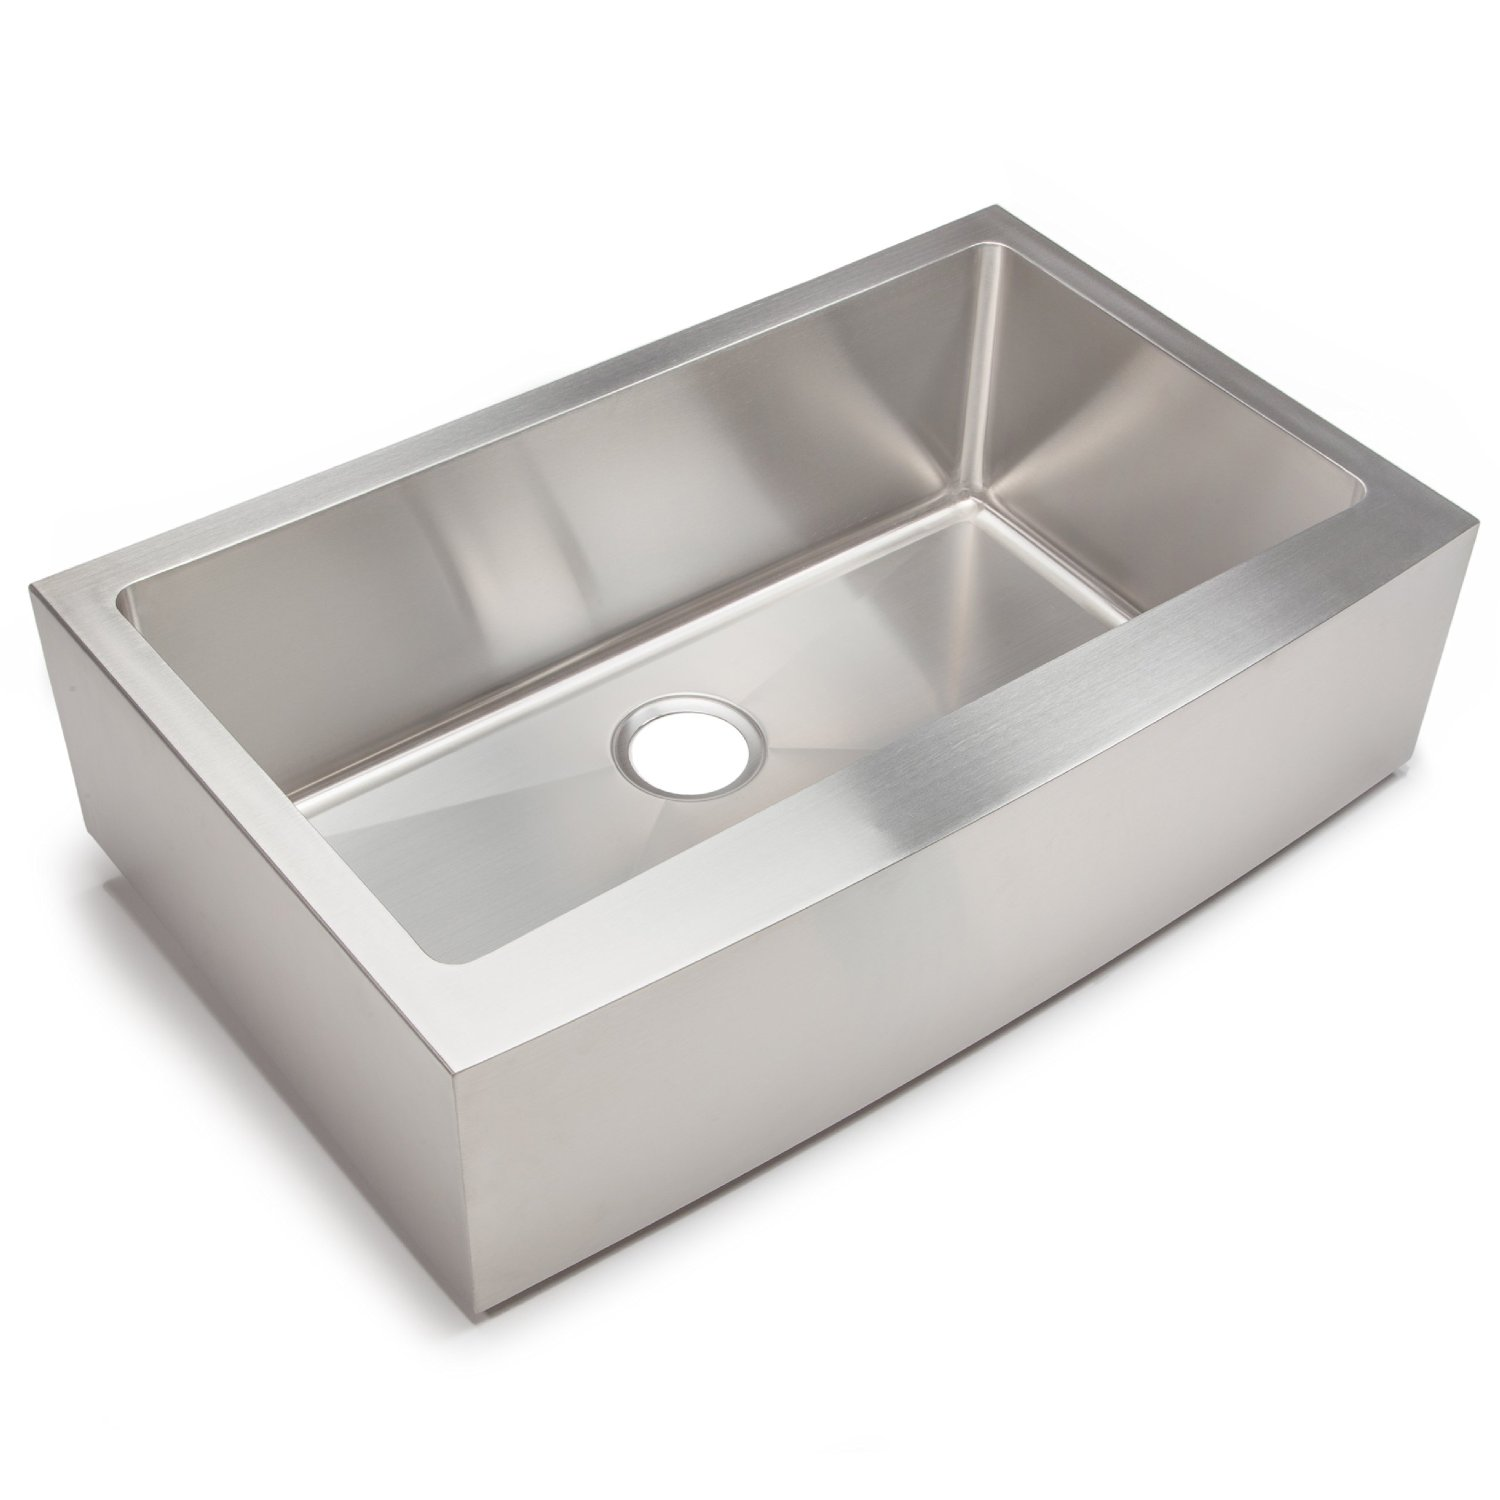 New premium Unique Farmhouse Apron Stainless Steel Kitchen Sin for wholesale